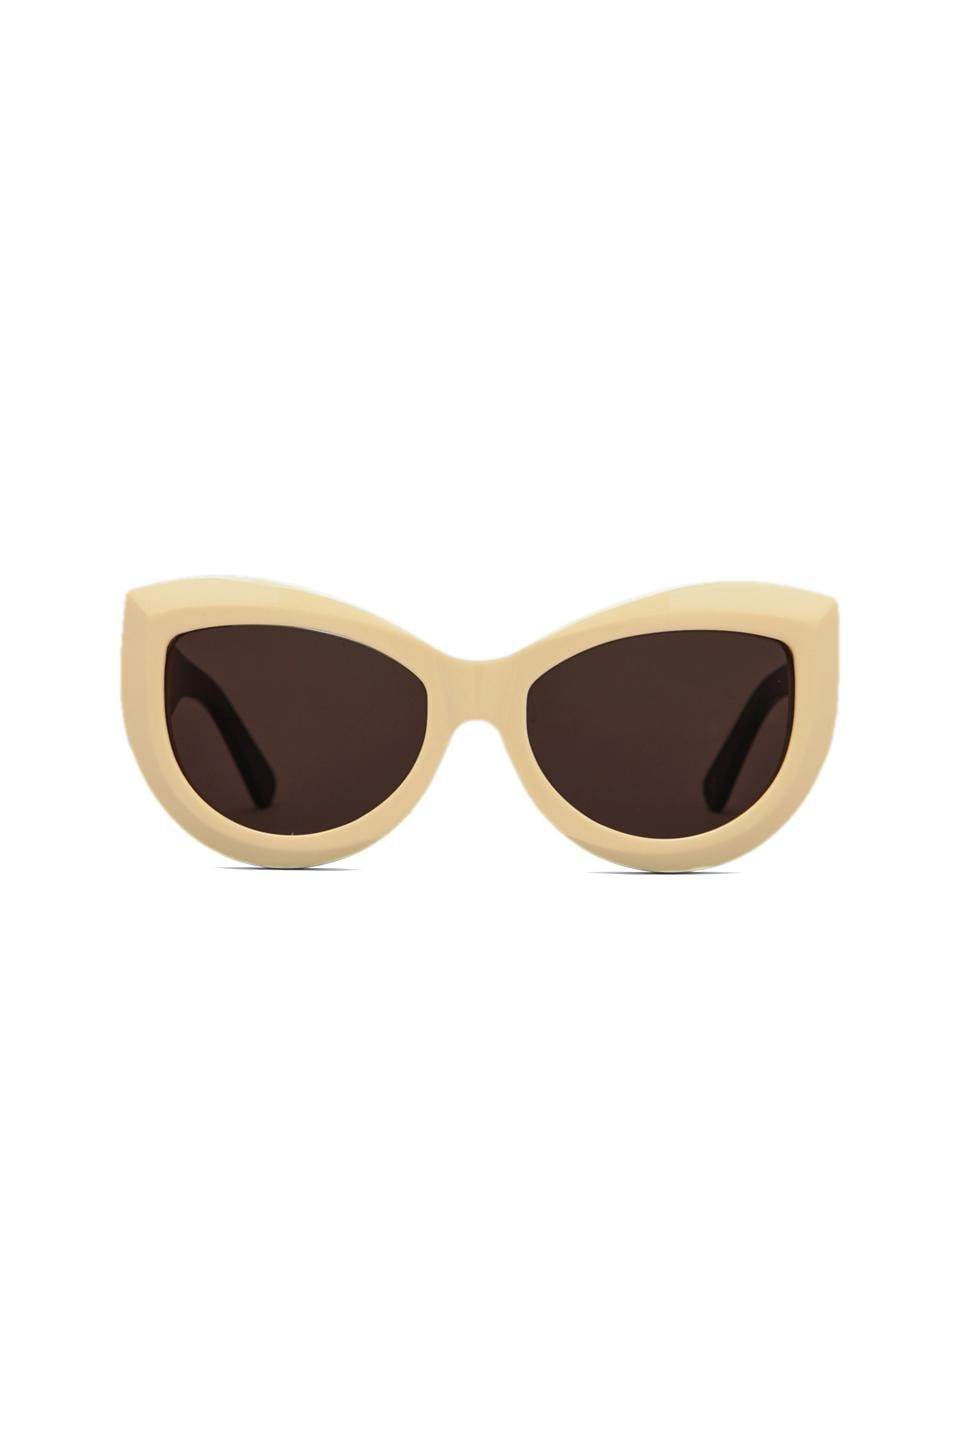 Wildfox Couture The Kitten Sunglasses in Cream/Black/Brown